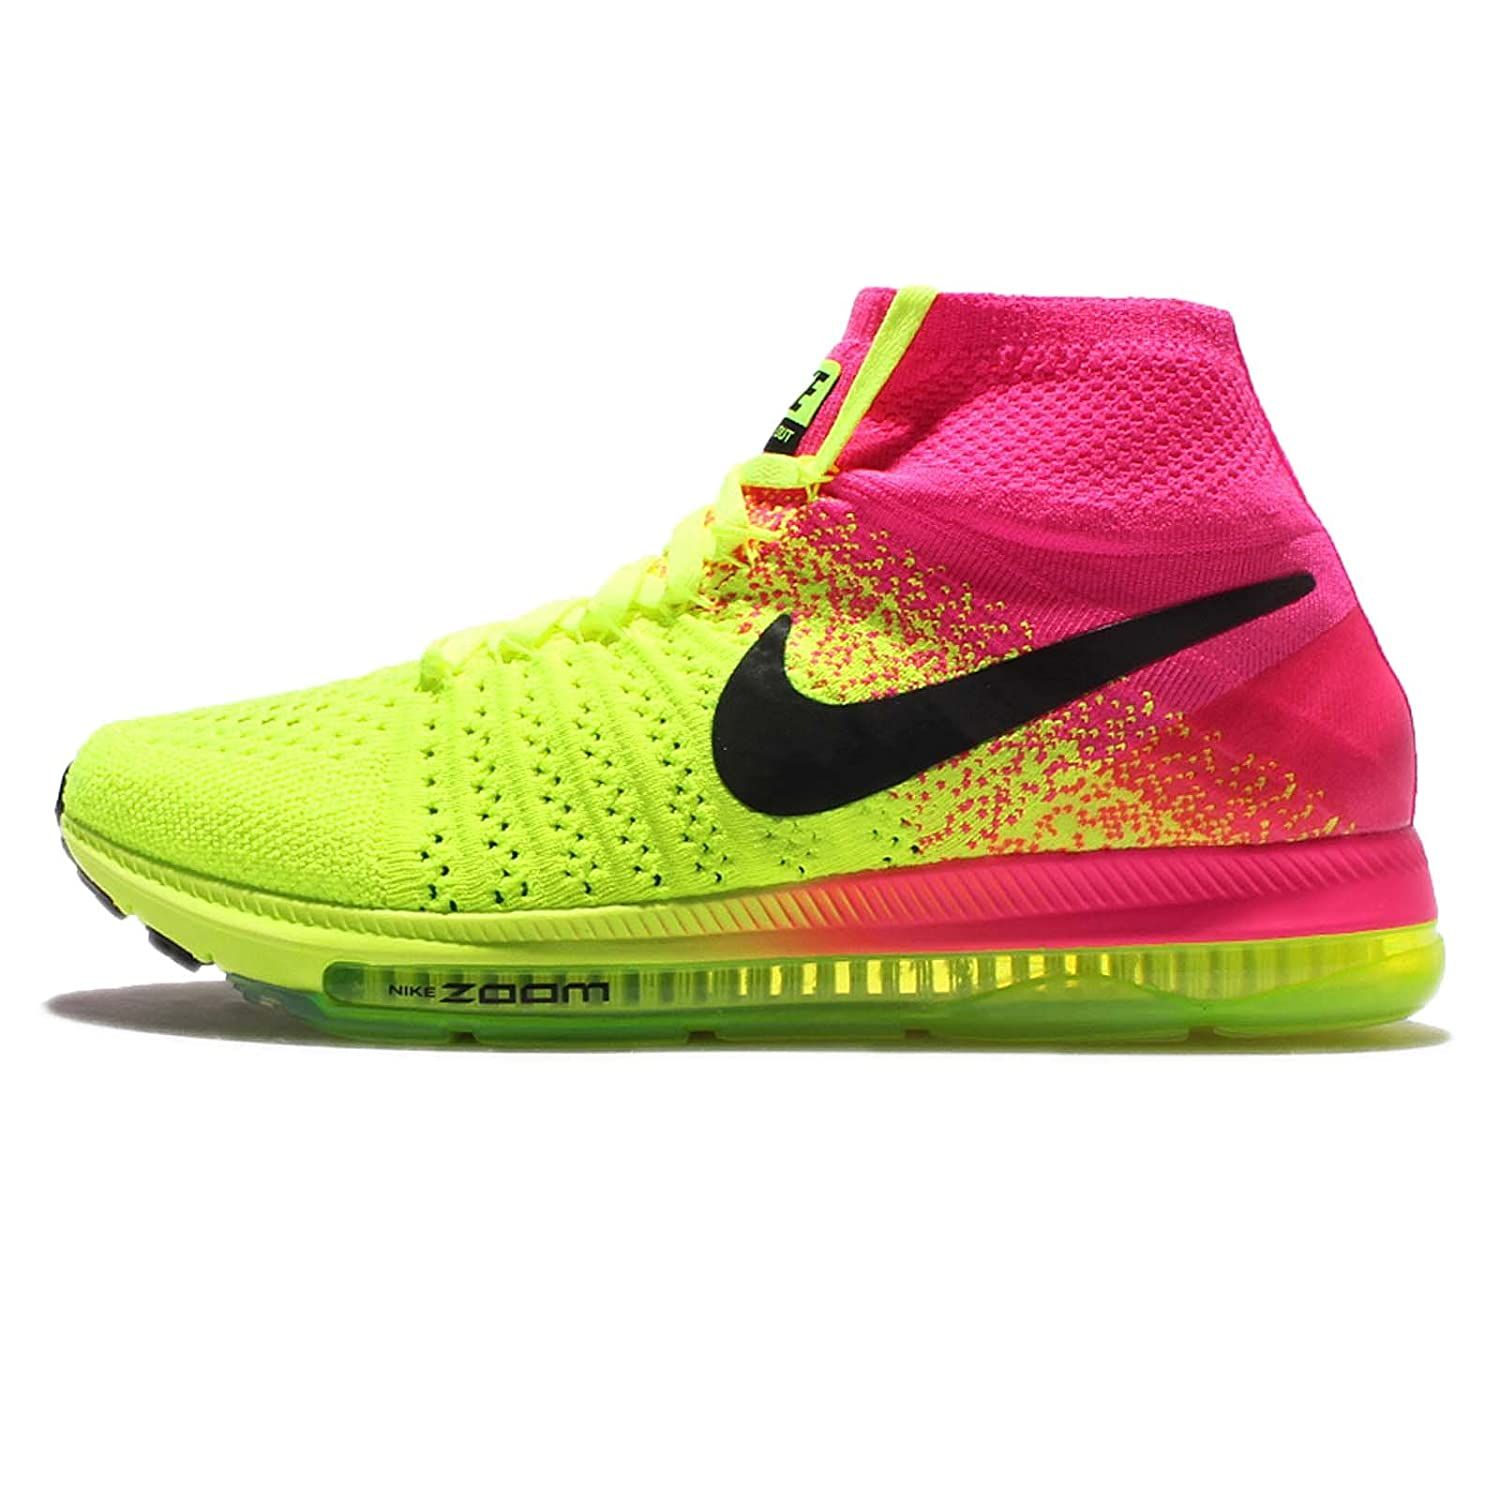 Nike Women's Zoom All Out Flyknit Running Shoes B01KHQW1YO 6.5 B(M) US|Multi-color/Multi-color